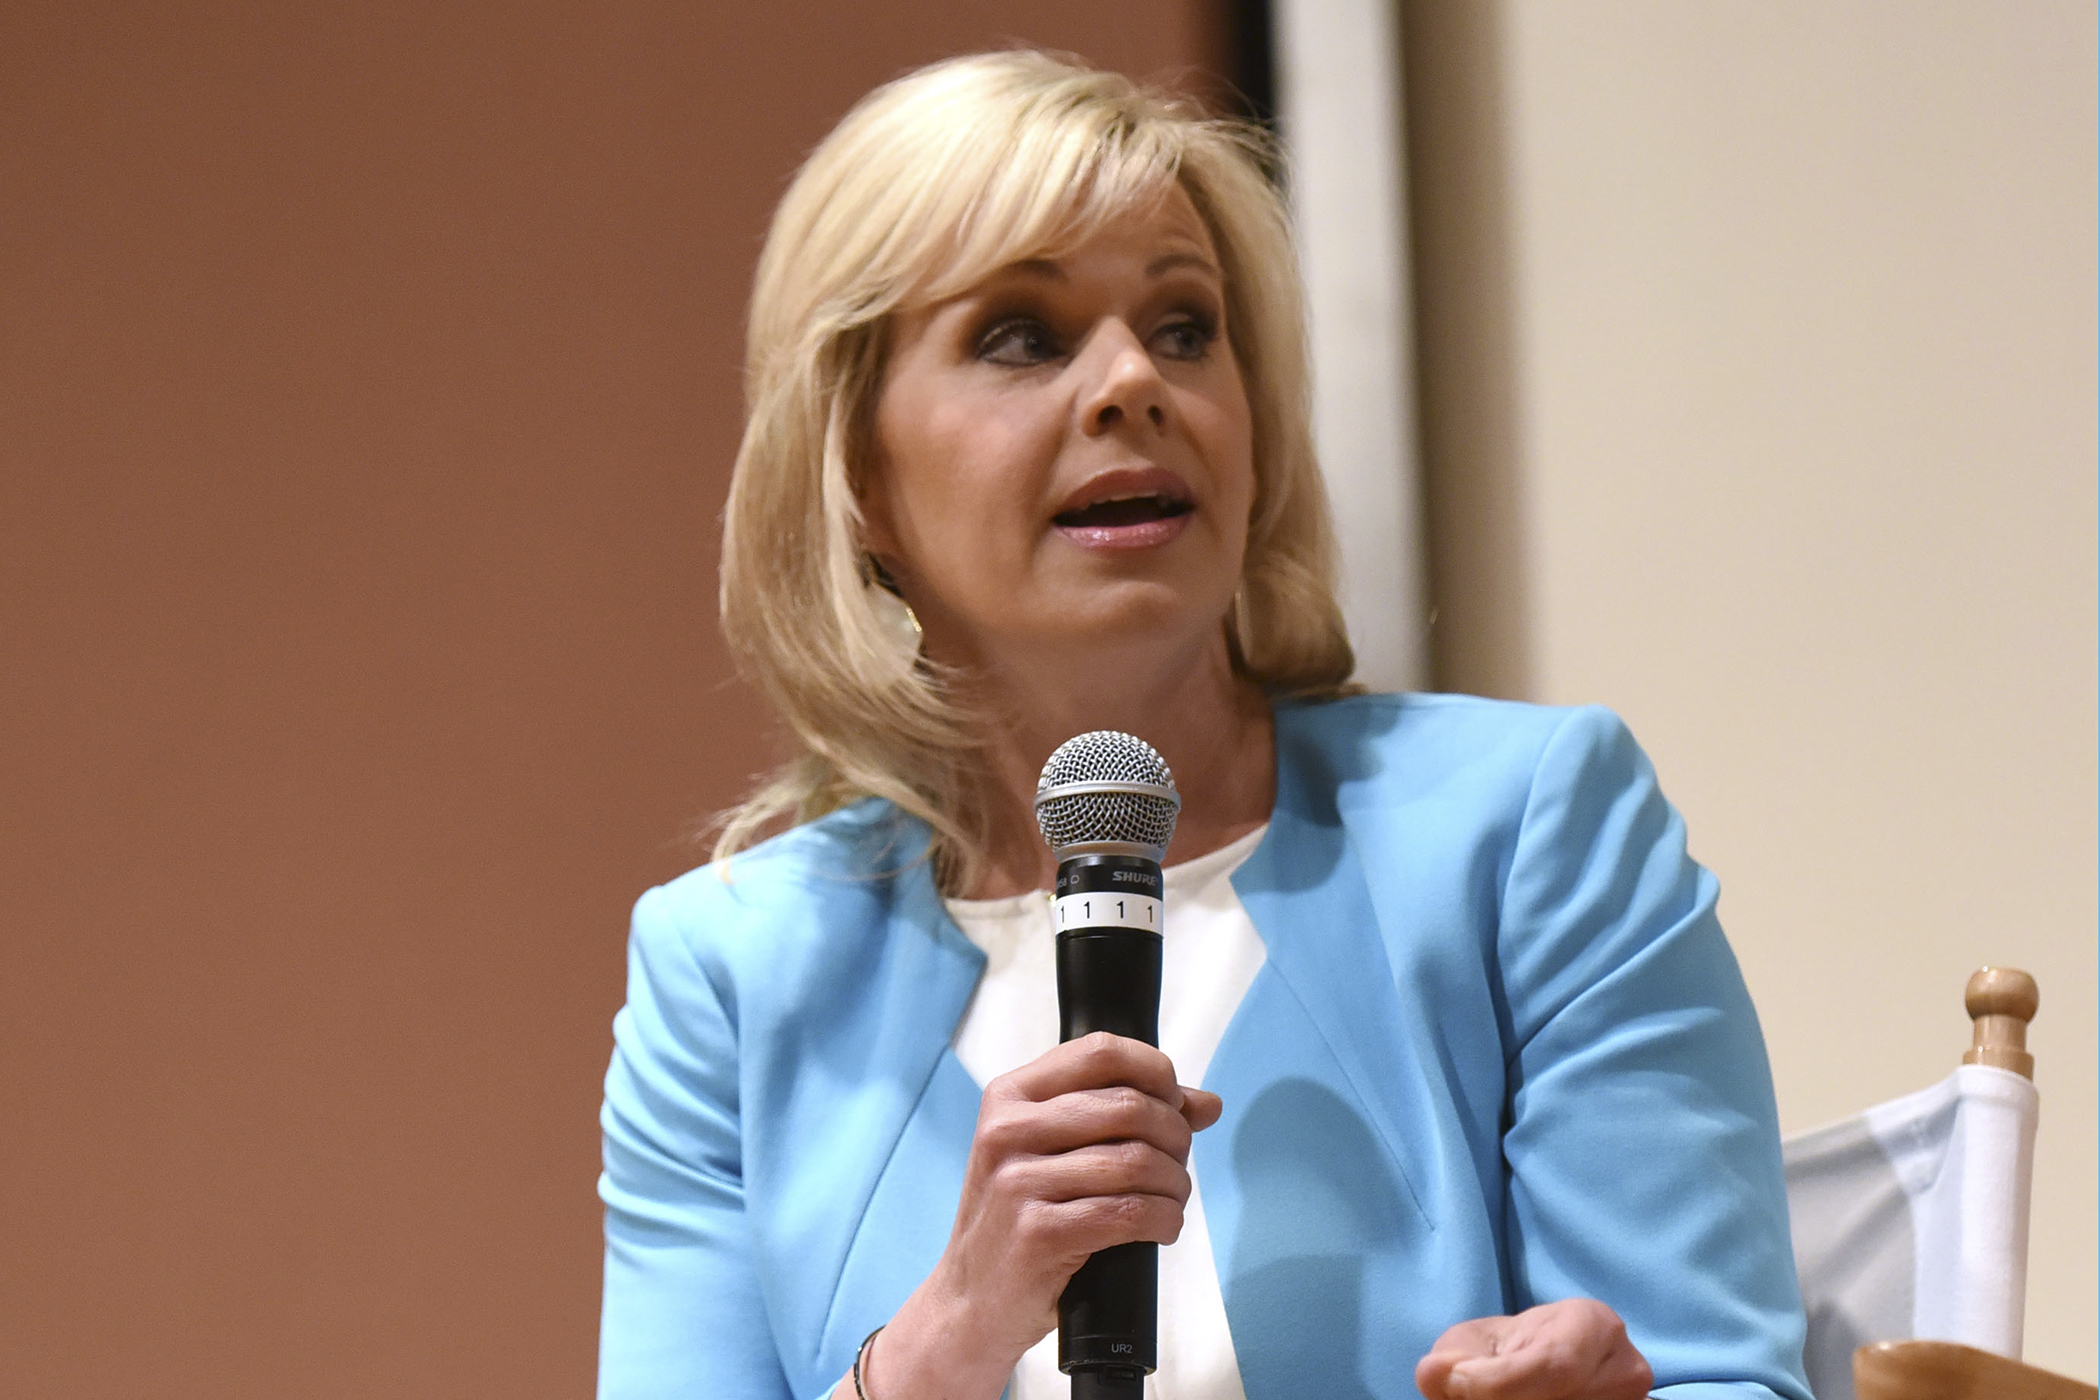 Gretchen Carlson speaks Women at the Top: Female Empowerment in Media Panel at the 2016 Greenwich International Film Festival on June 12, 2016 in Greenwich, Connecticut.